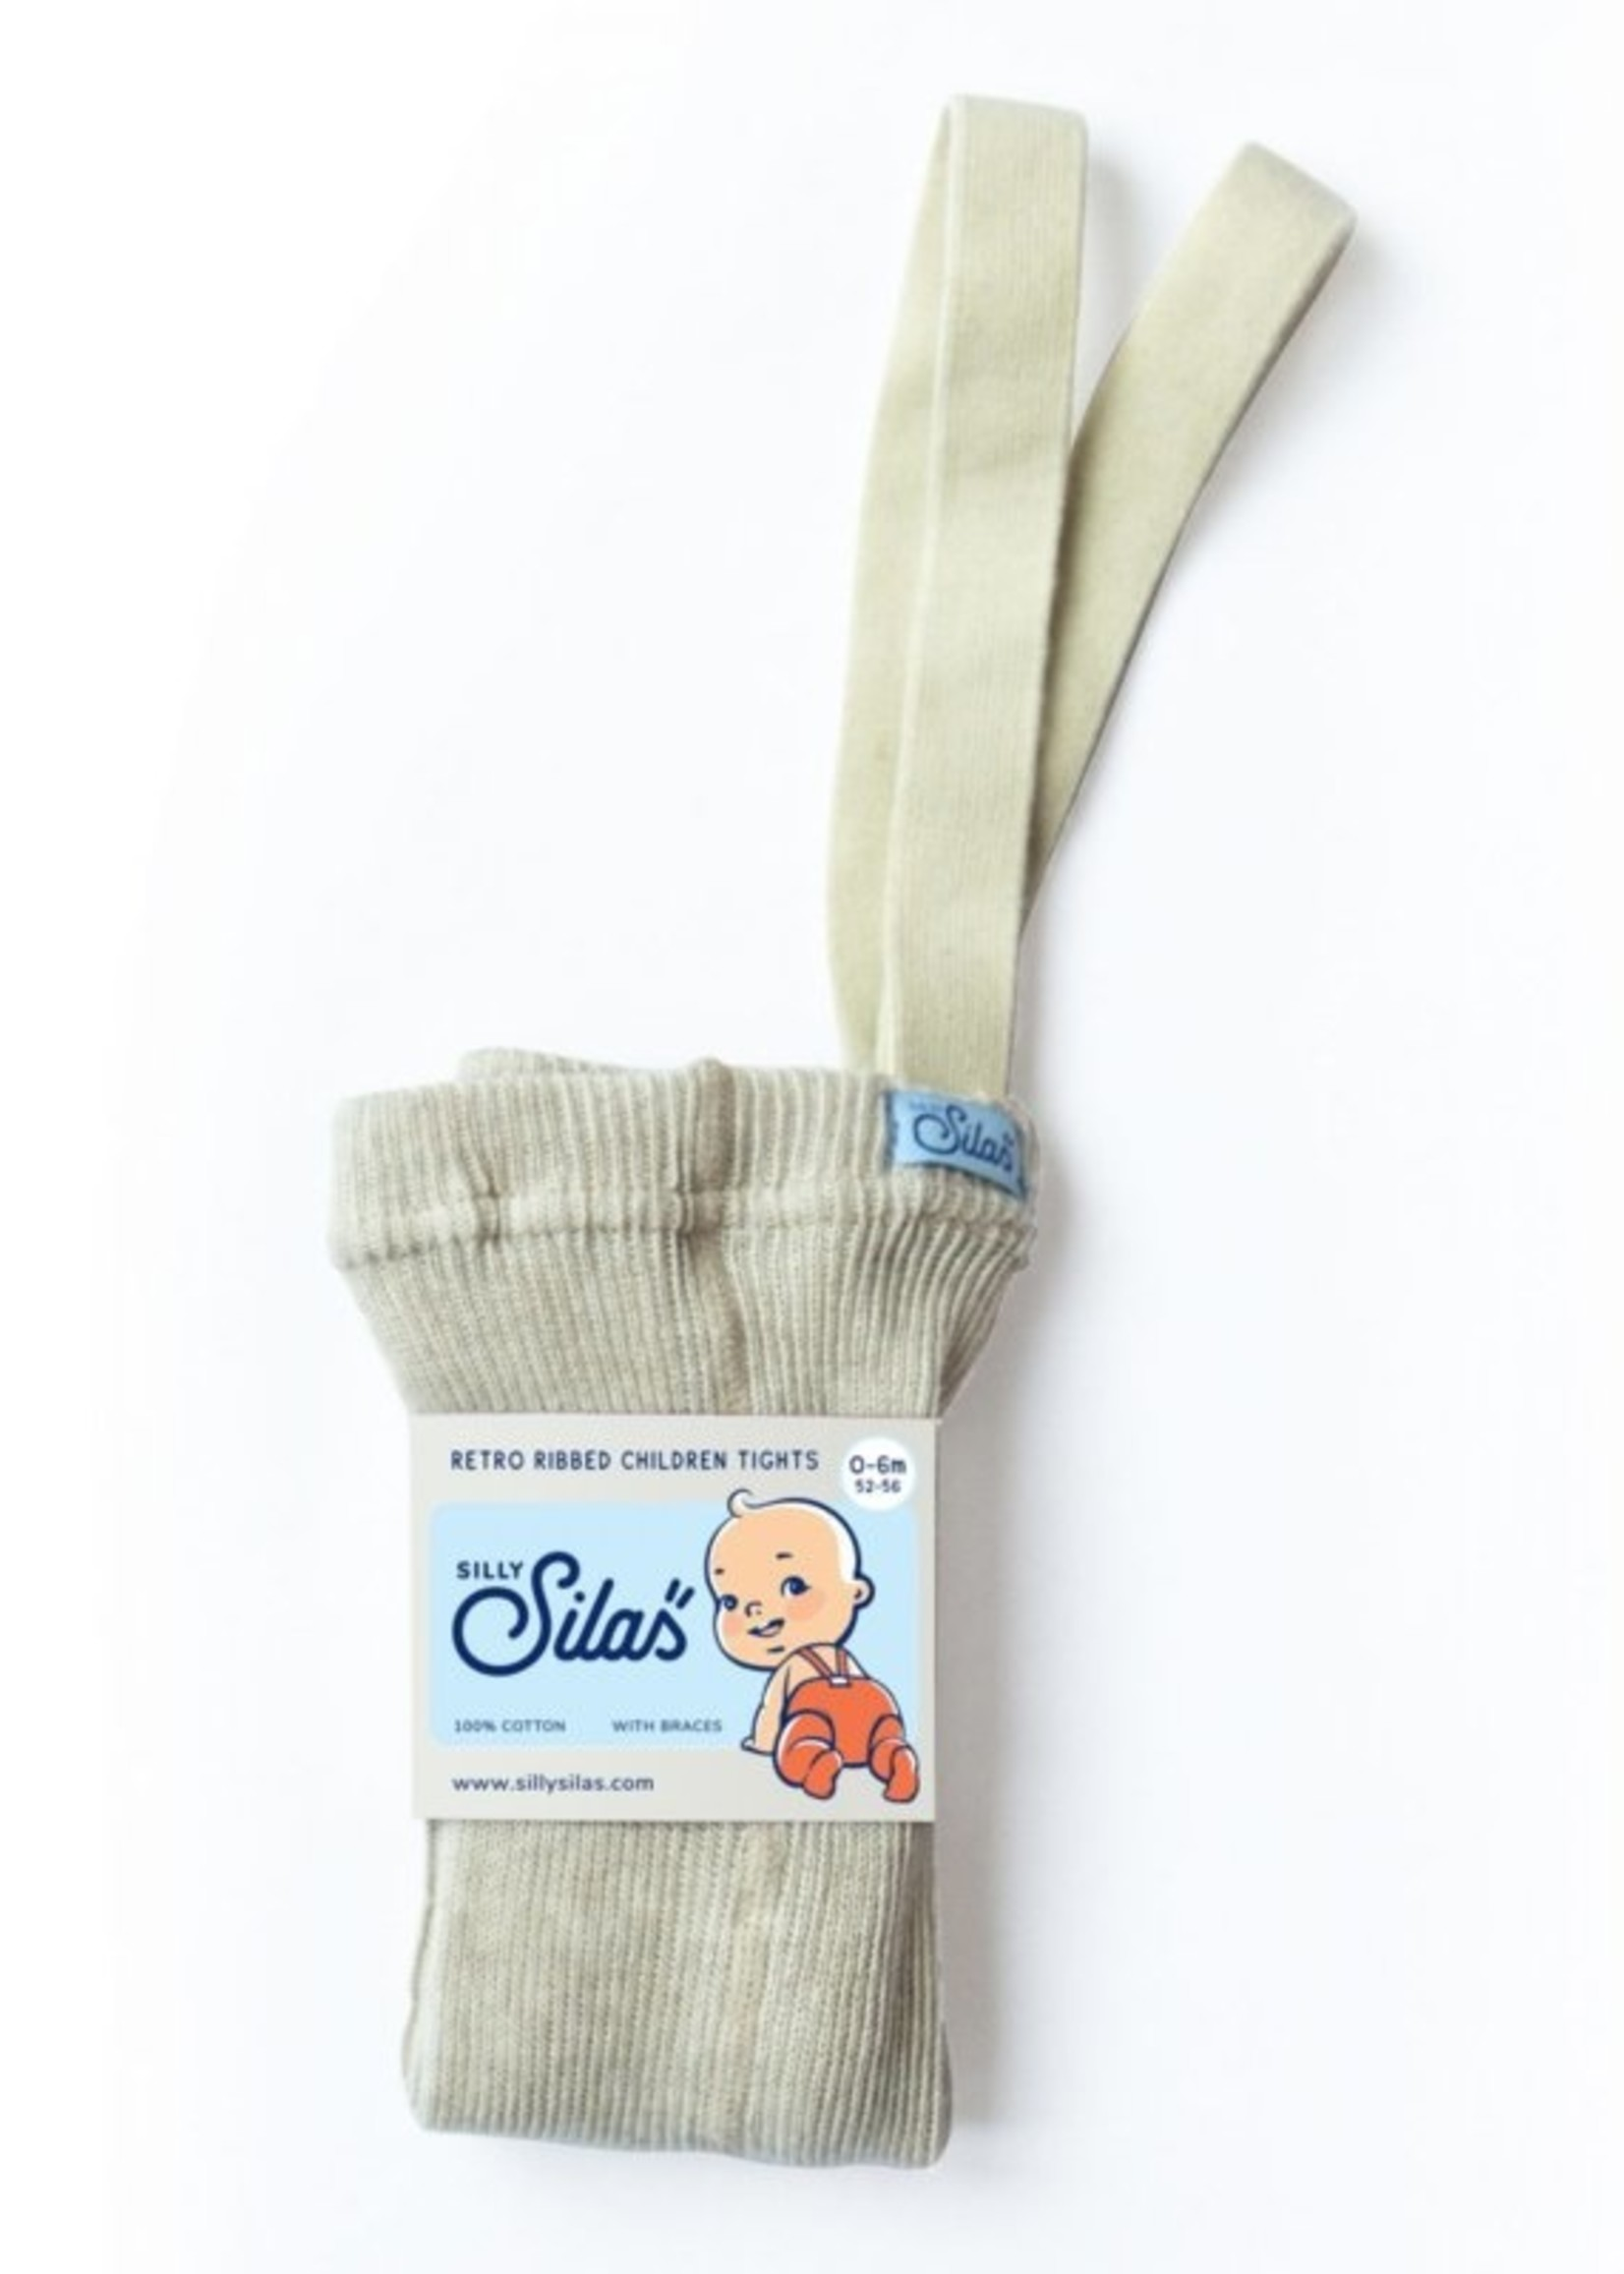 Silly Silas Silly Silas maillot met bretels